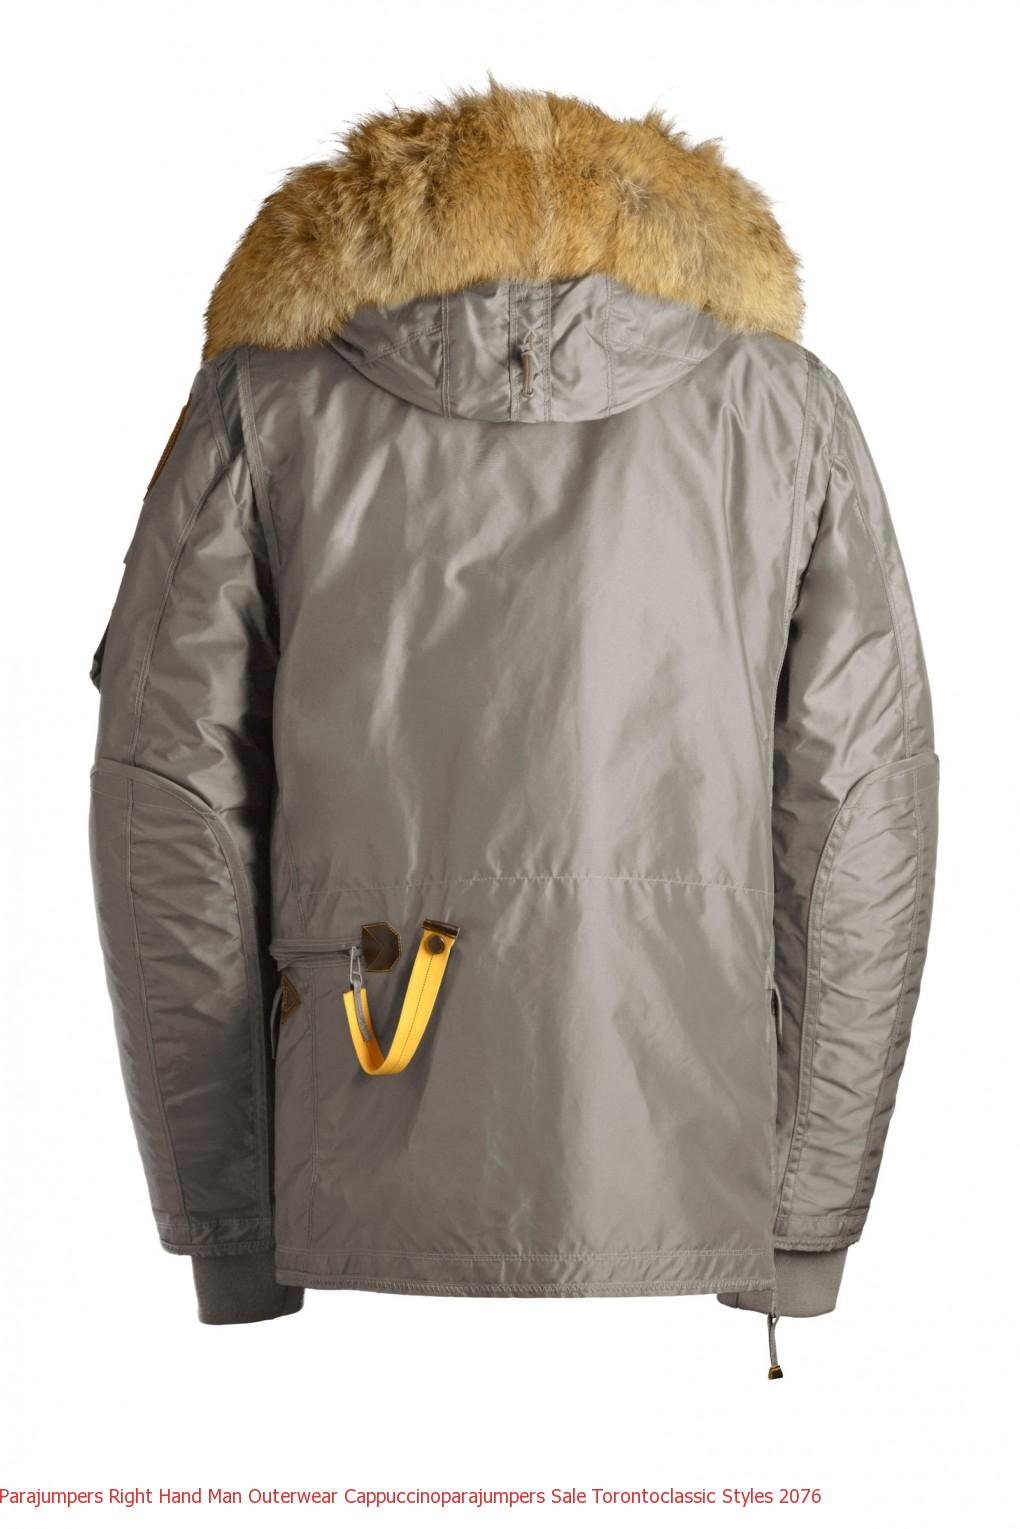 Parajumpers Right Hand Man Outerwear Cappuccinoparajumpers Sale Torontoclassic Styles 2077